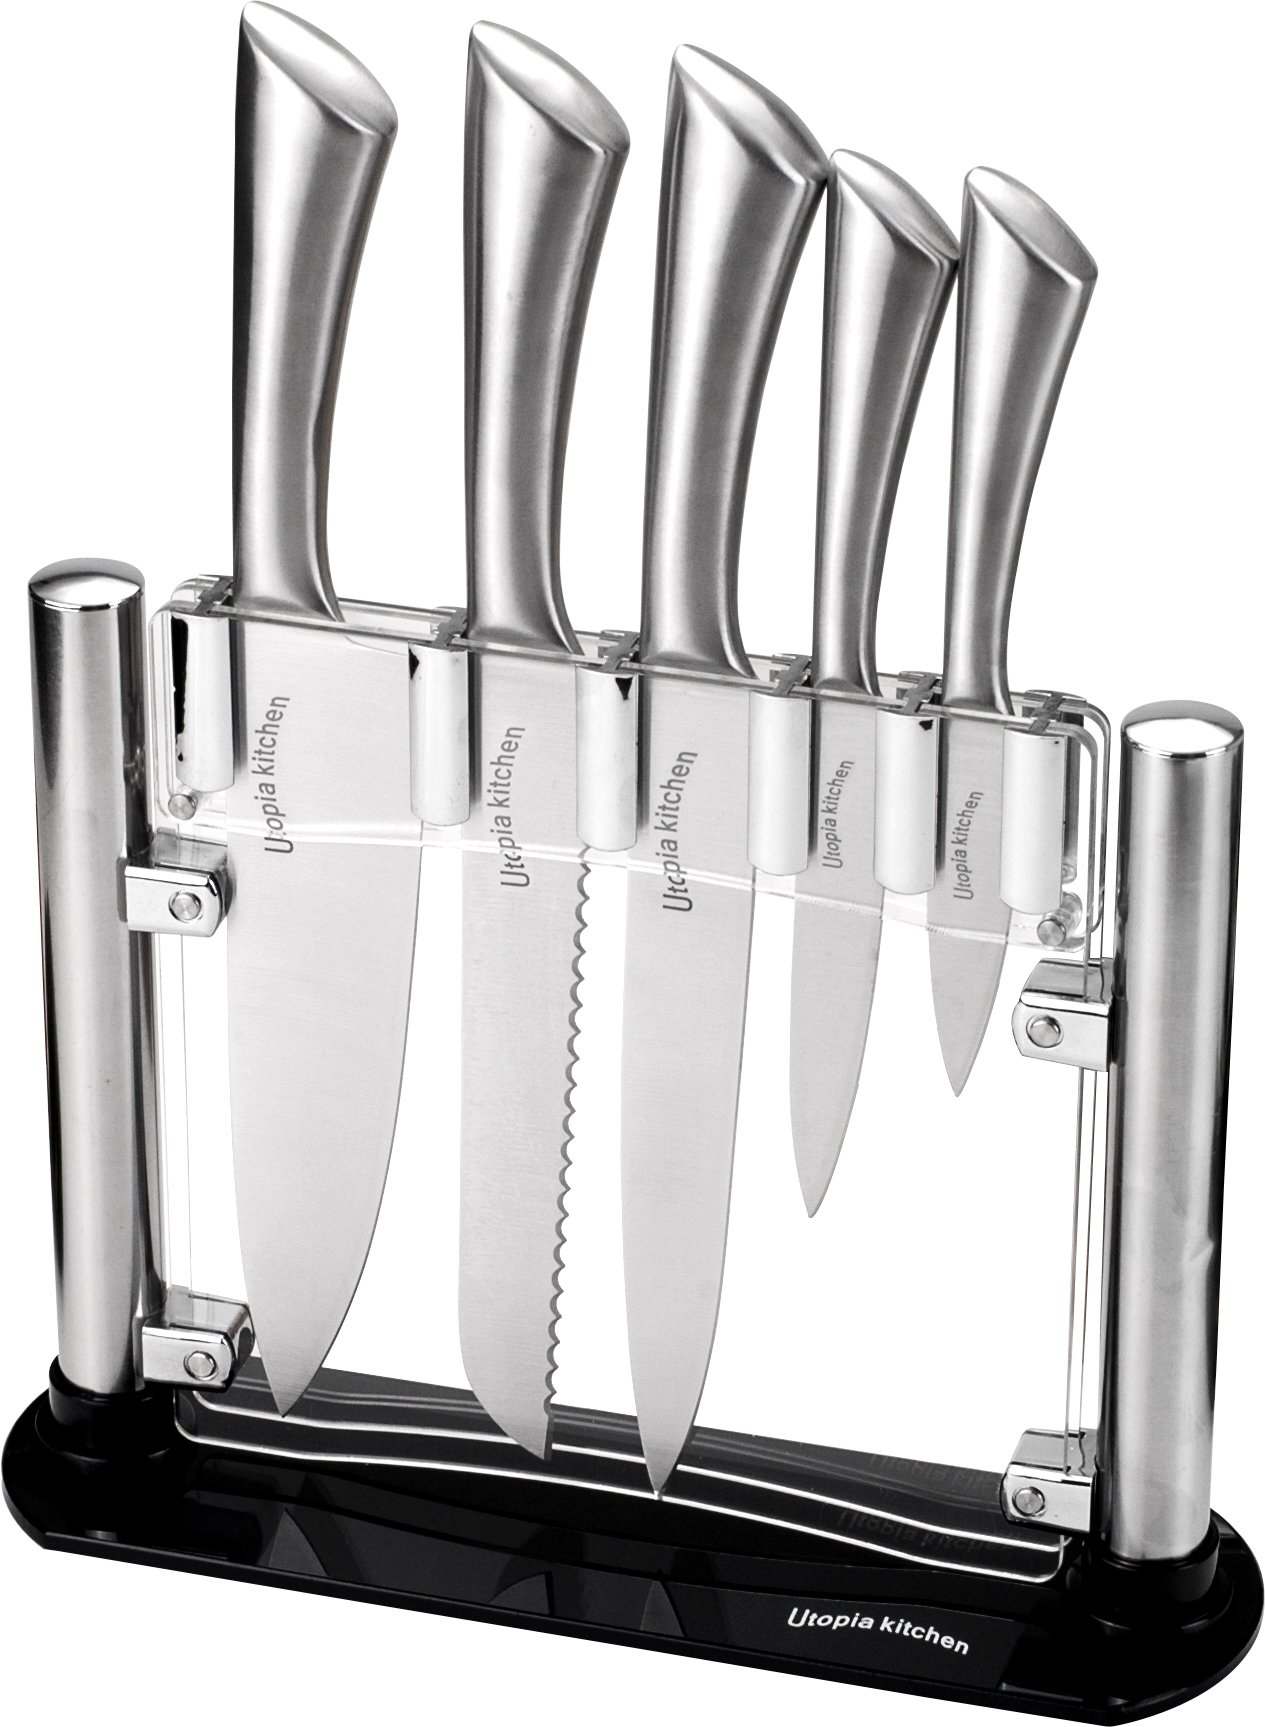 Premium Class Stainless Steel Kitchen 6 Piece Knives Set (5 Knives plus an Acrylic Stand) - by Utopia Kitchen by Utopia Kitchen